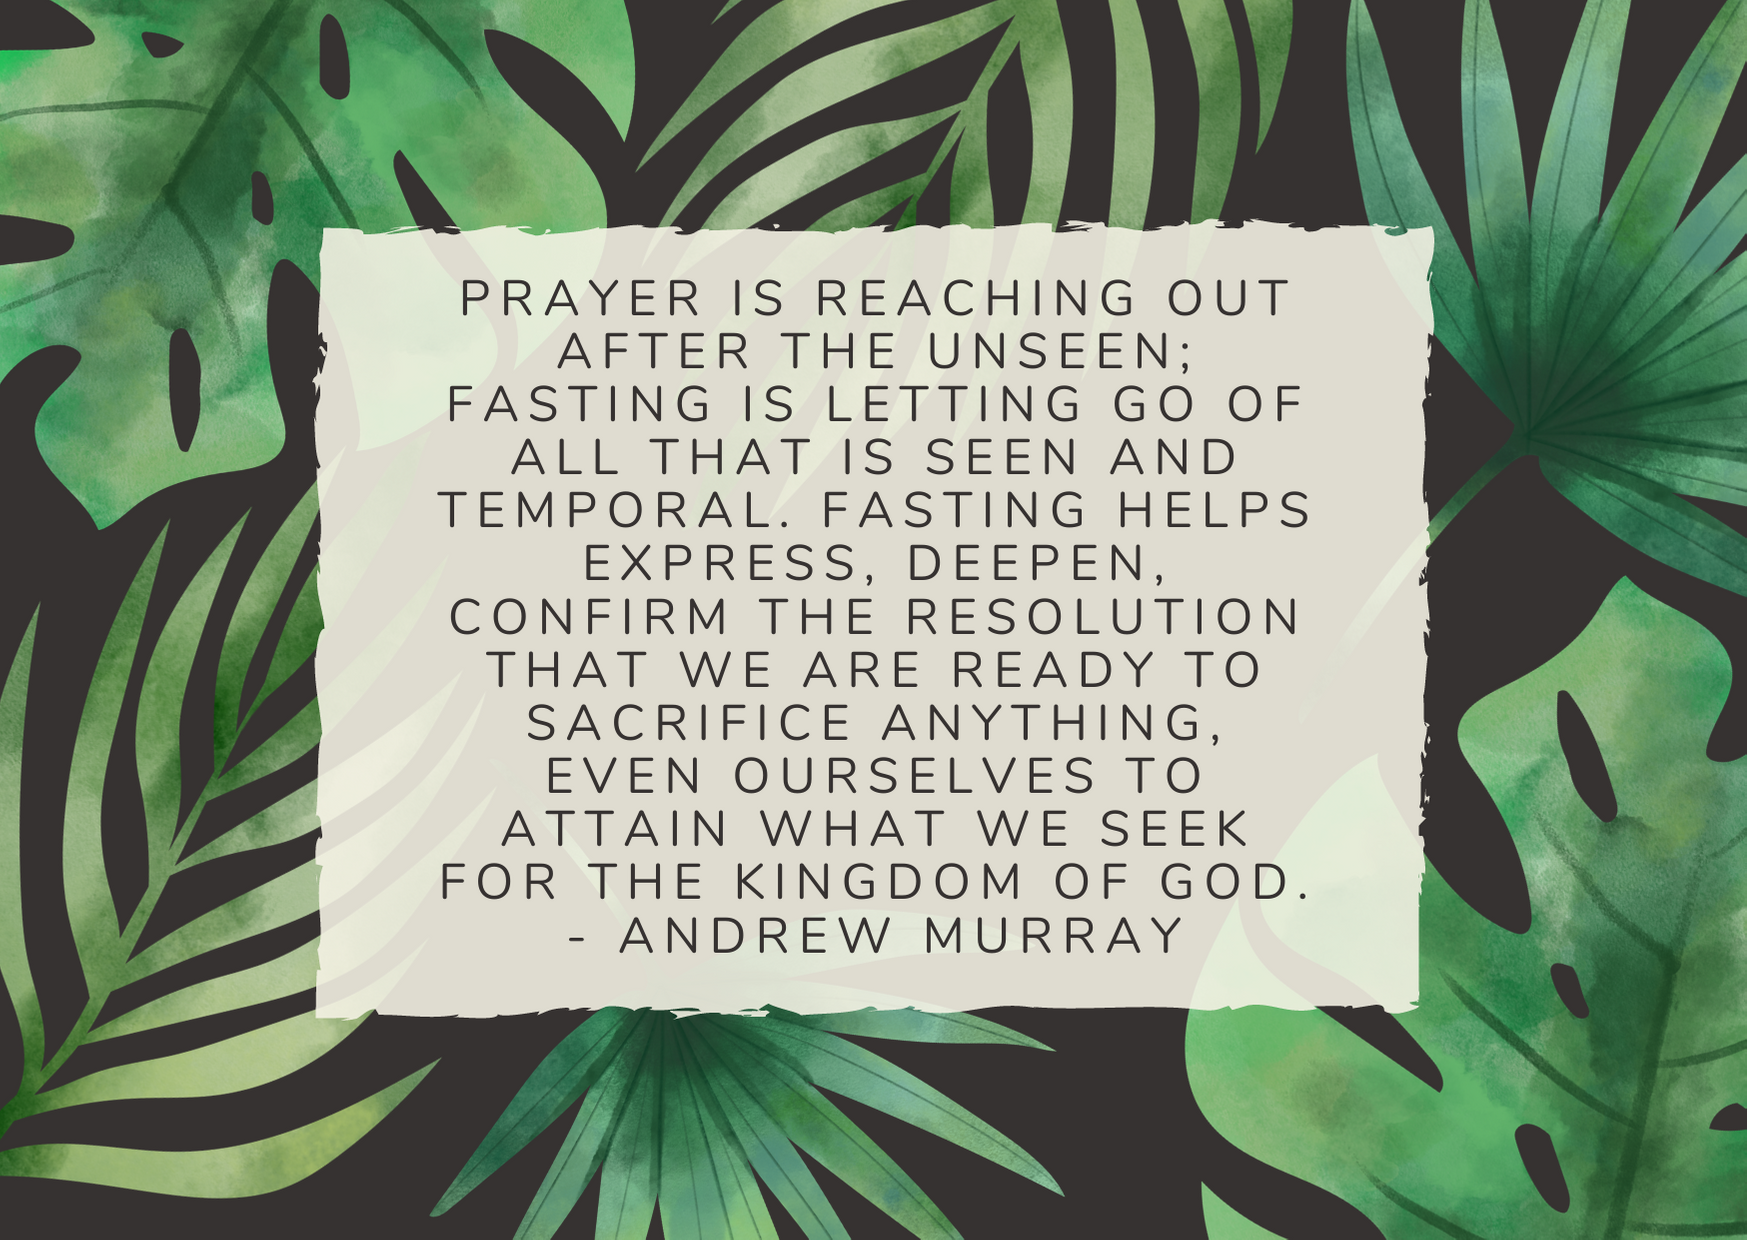 Prayer is reaching out after the unseen; fasting is letting go of all that is seen and temporal. Fasting helps express, deepen, confirm the resolution that we are ready to sacrifice anything, even ourselves to attain what we seek for the kingdom of God. - Andrew Murray